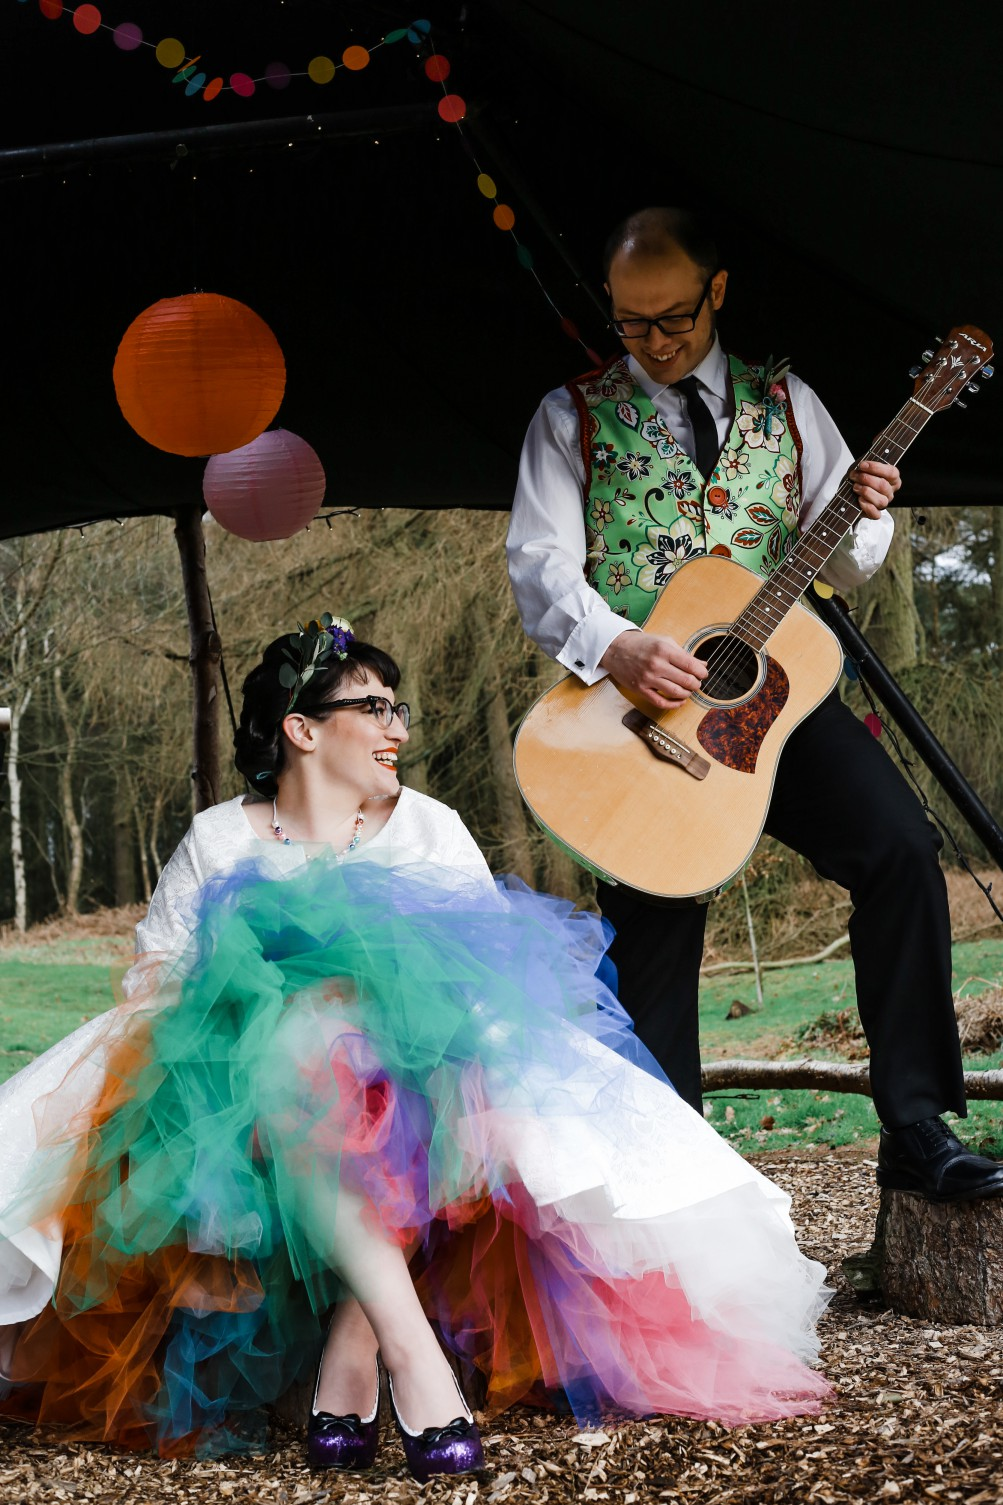 Becky Payne Photographer - Rainbow Unicorn Styled Wedding Shoot - Guitar - Serenade